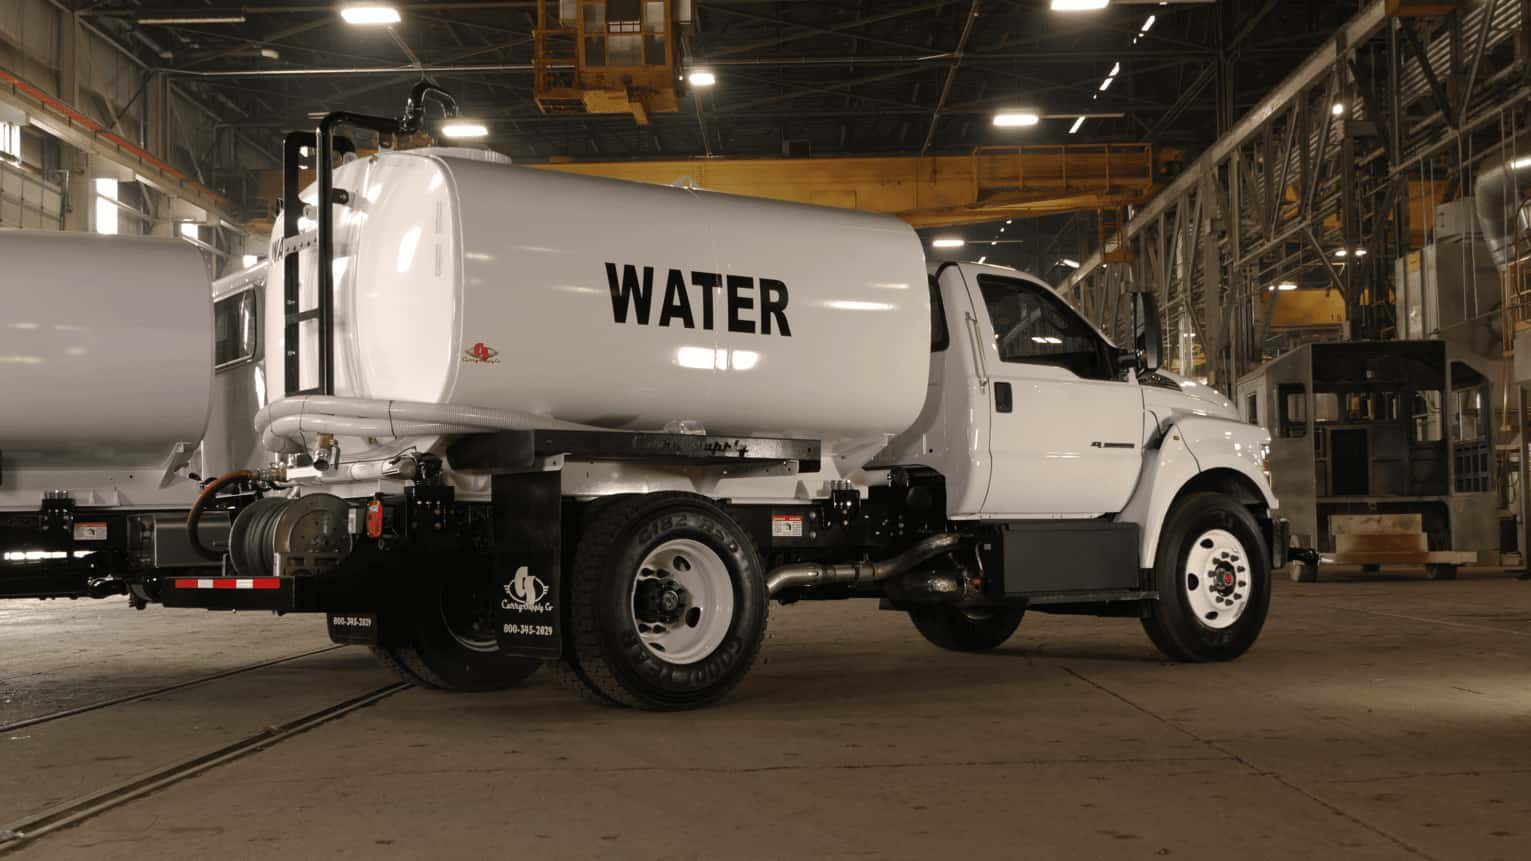 What are the uses of water trucks